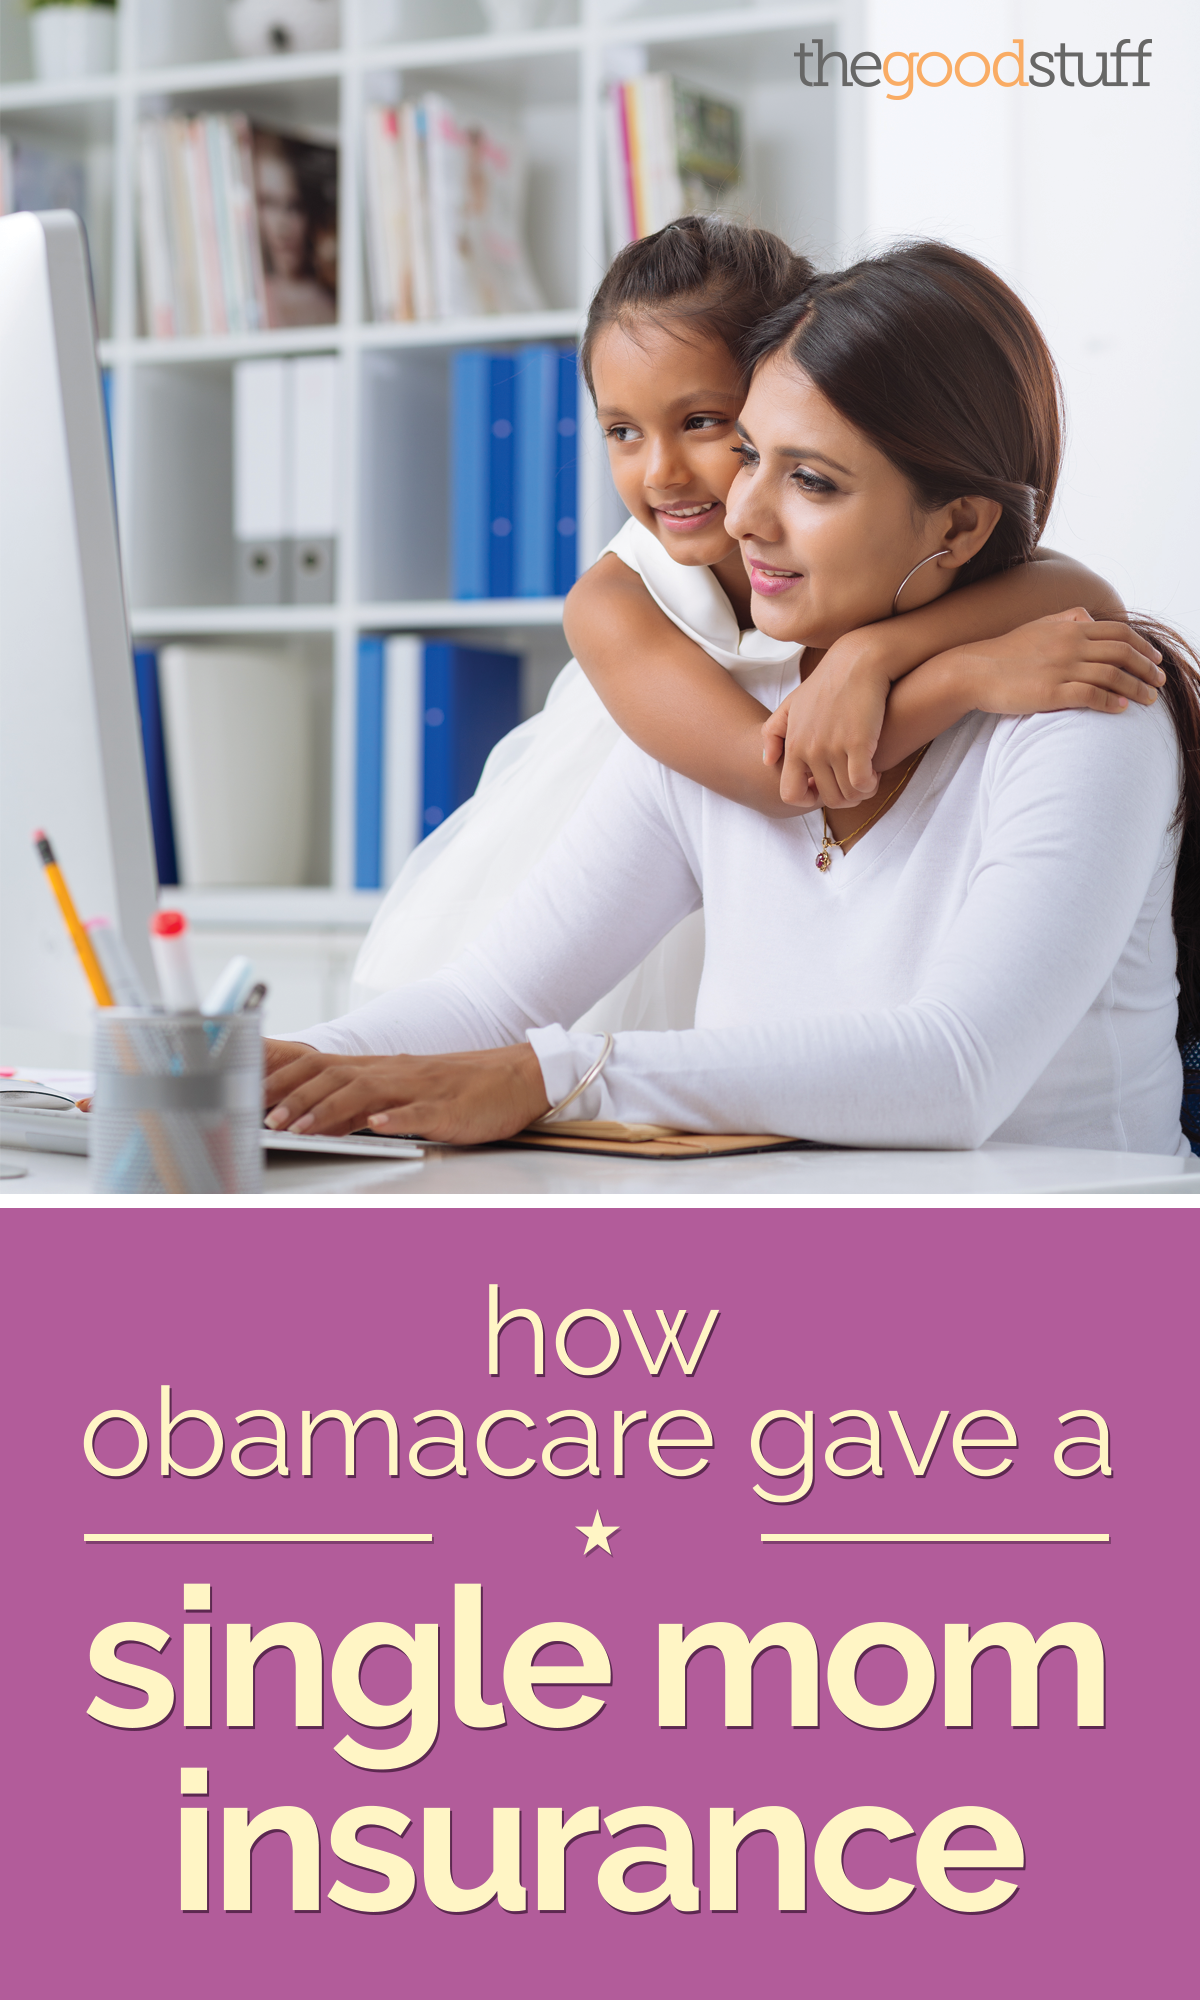 How Obamacare Gave a Single Mom Insurance | thegoodstuff